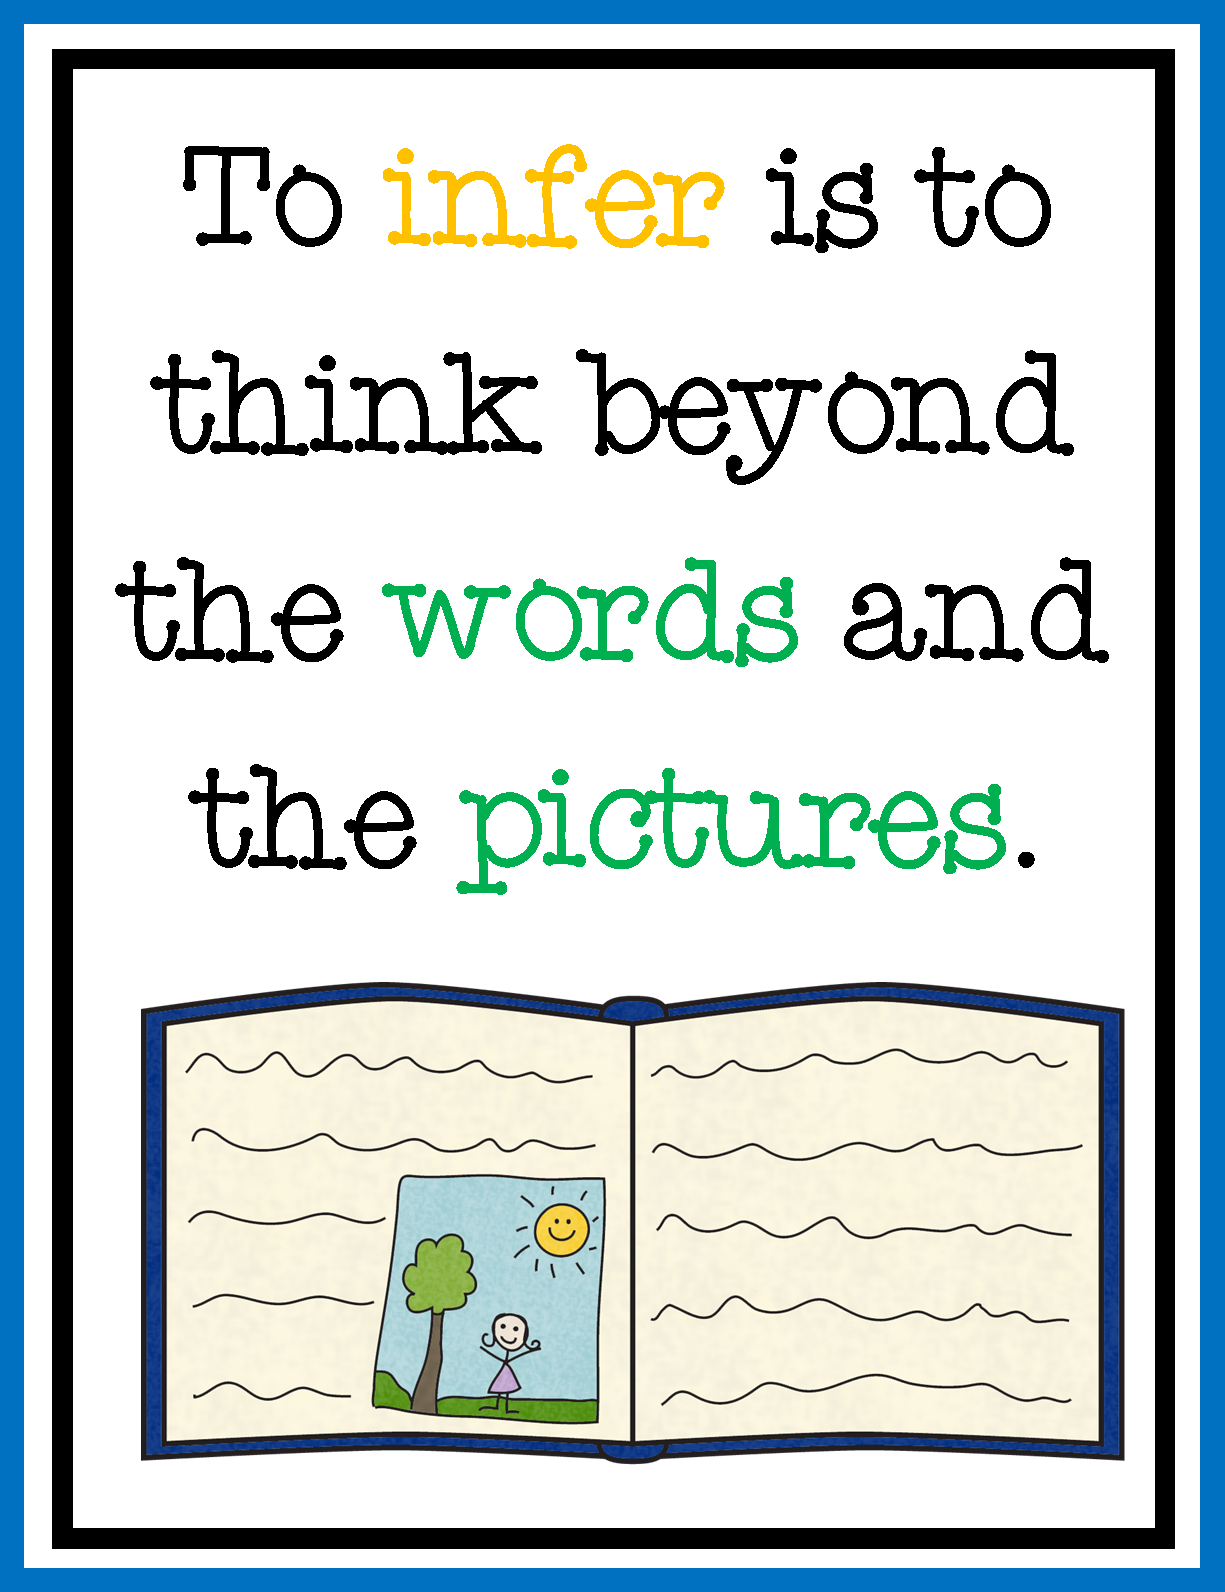 17 Best images about Inferring on Pinterest | Anchor charts ...